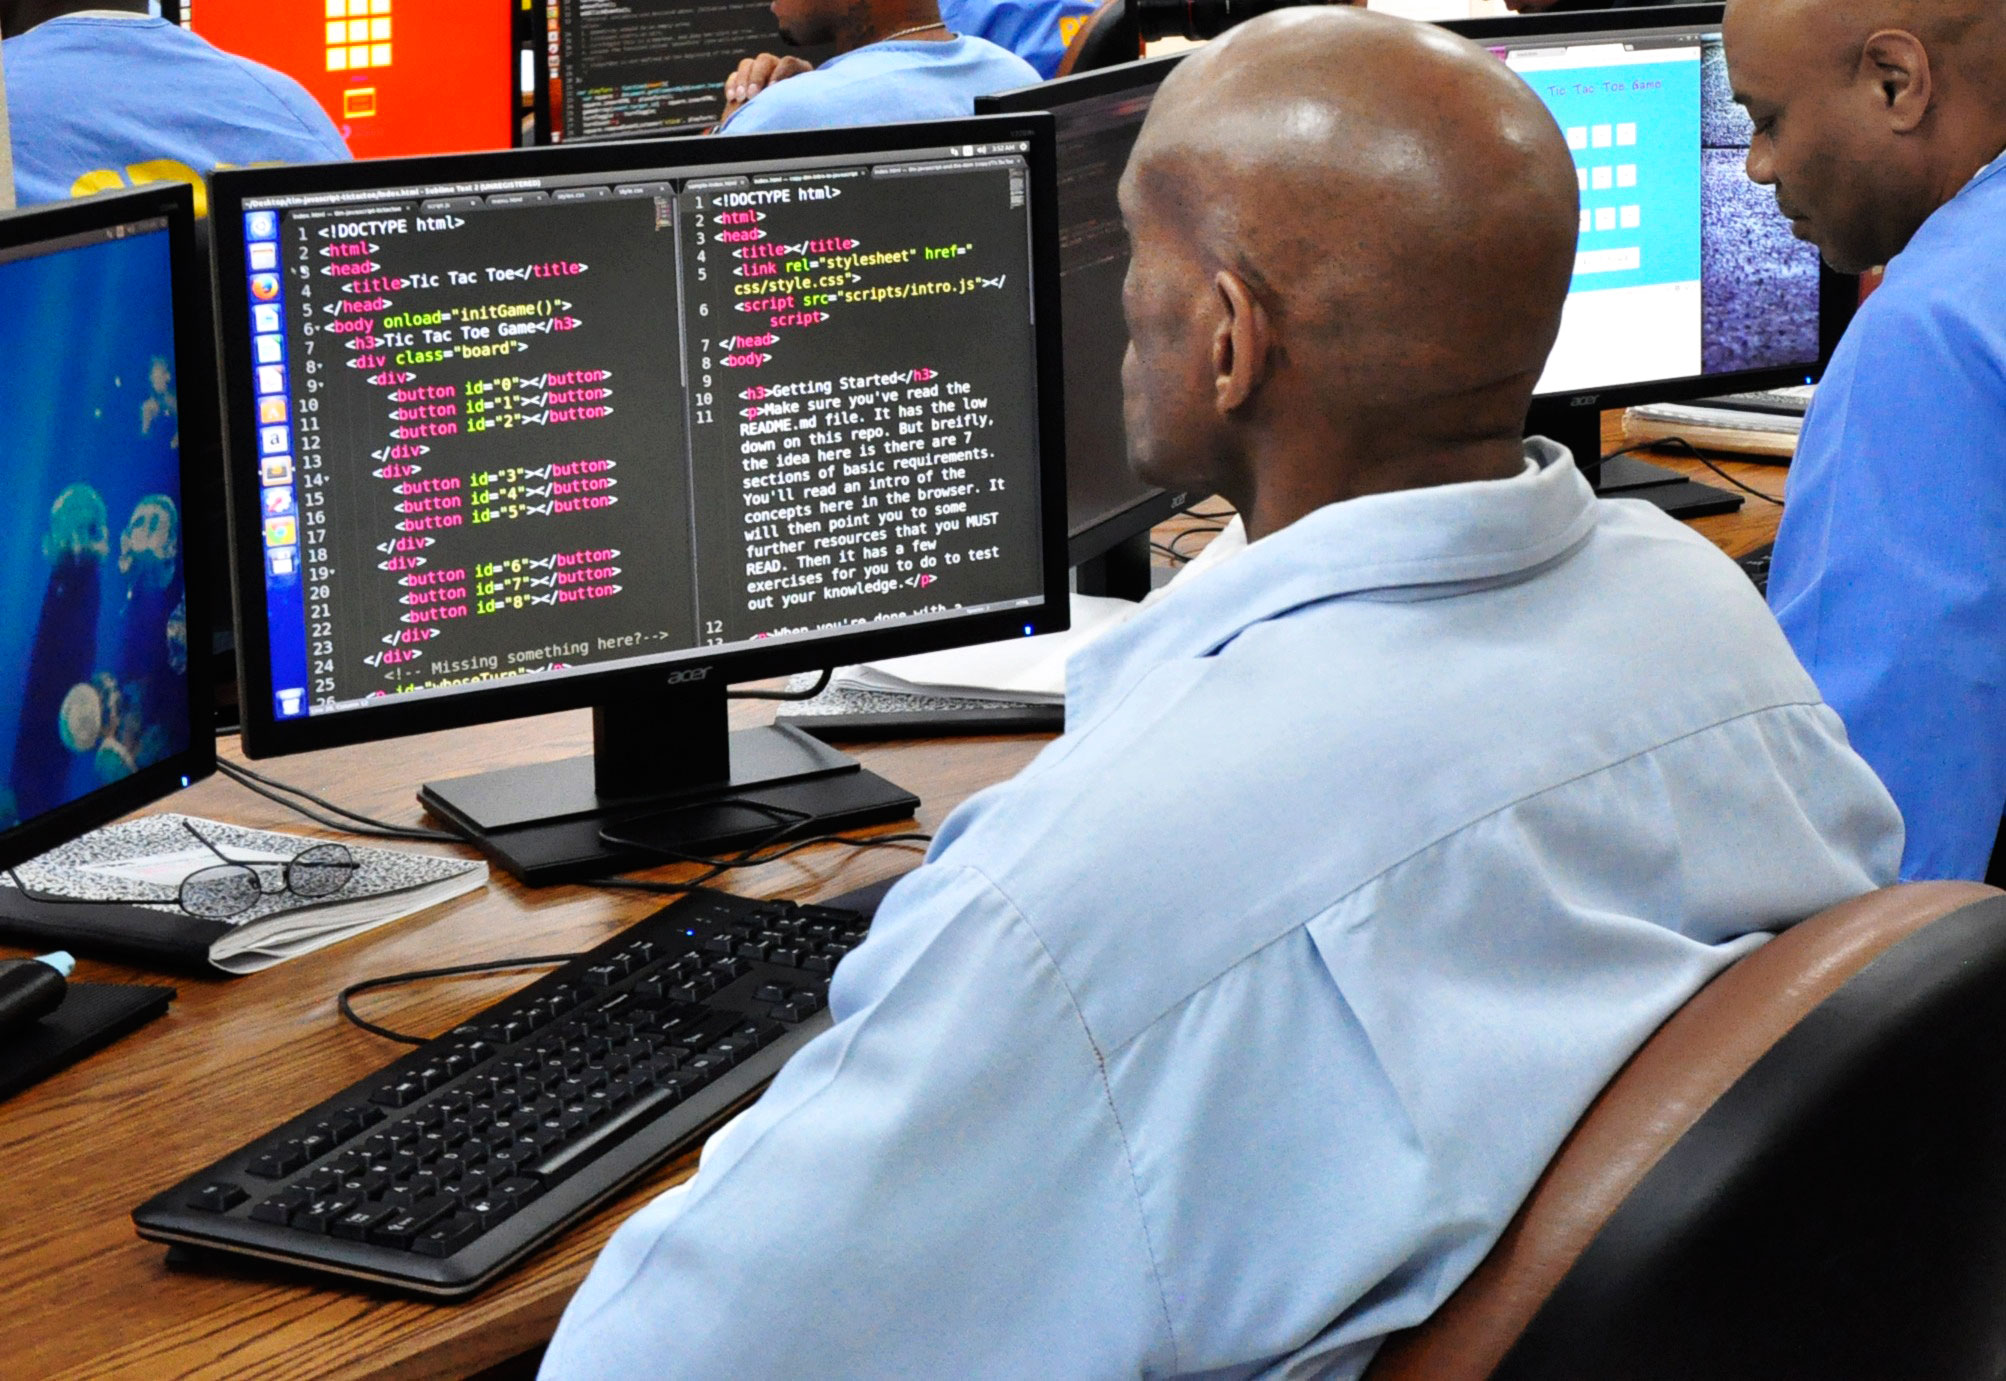 Inmates at San Quentin can learn to code